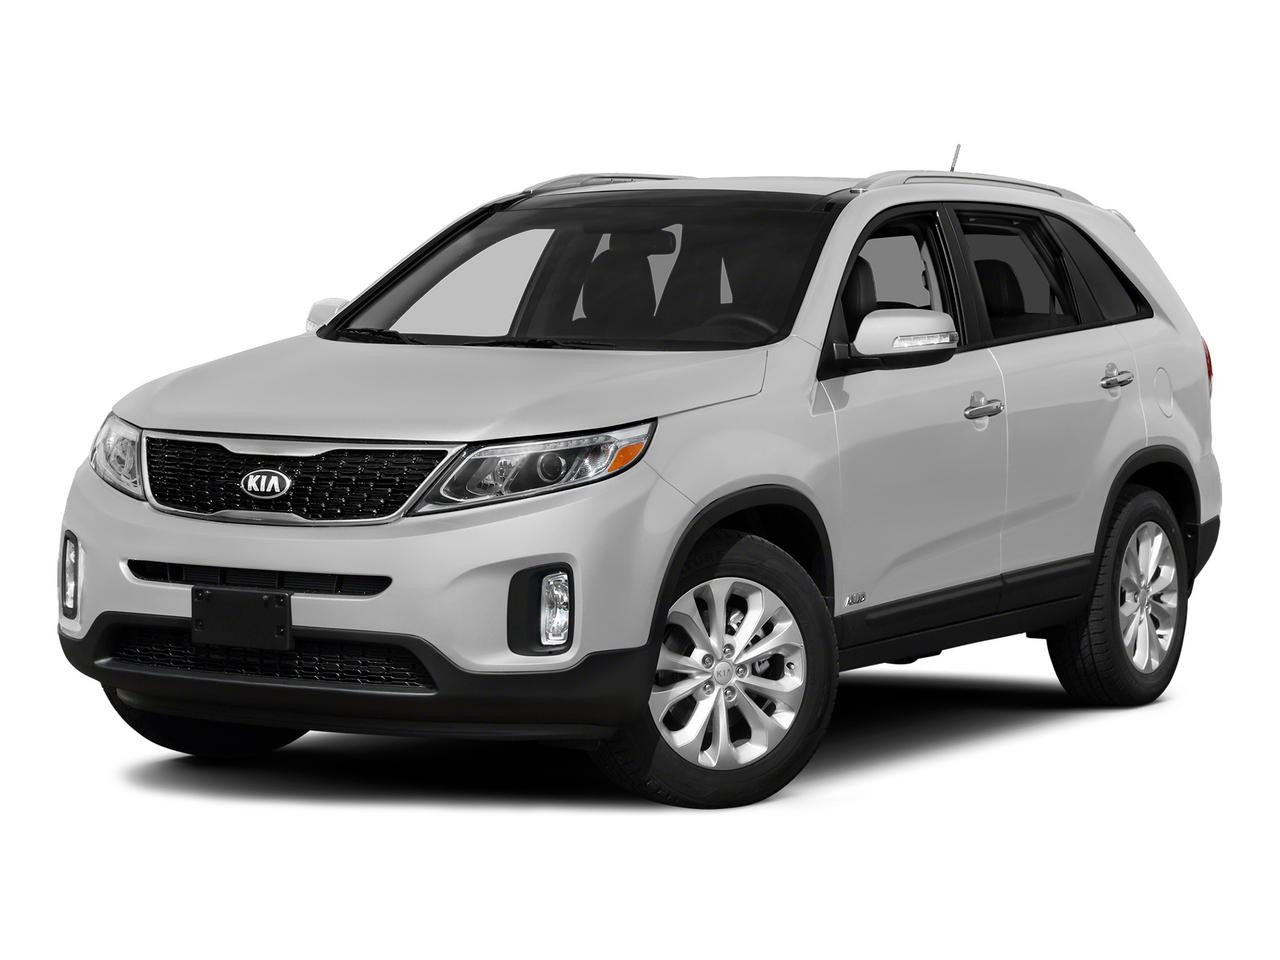 2015 Kia Sorento Vehicle Photo in Richmond, TX 77469